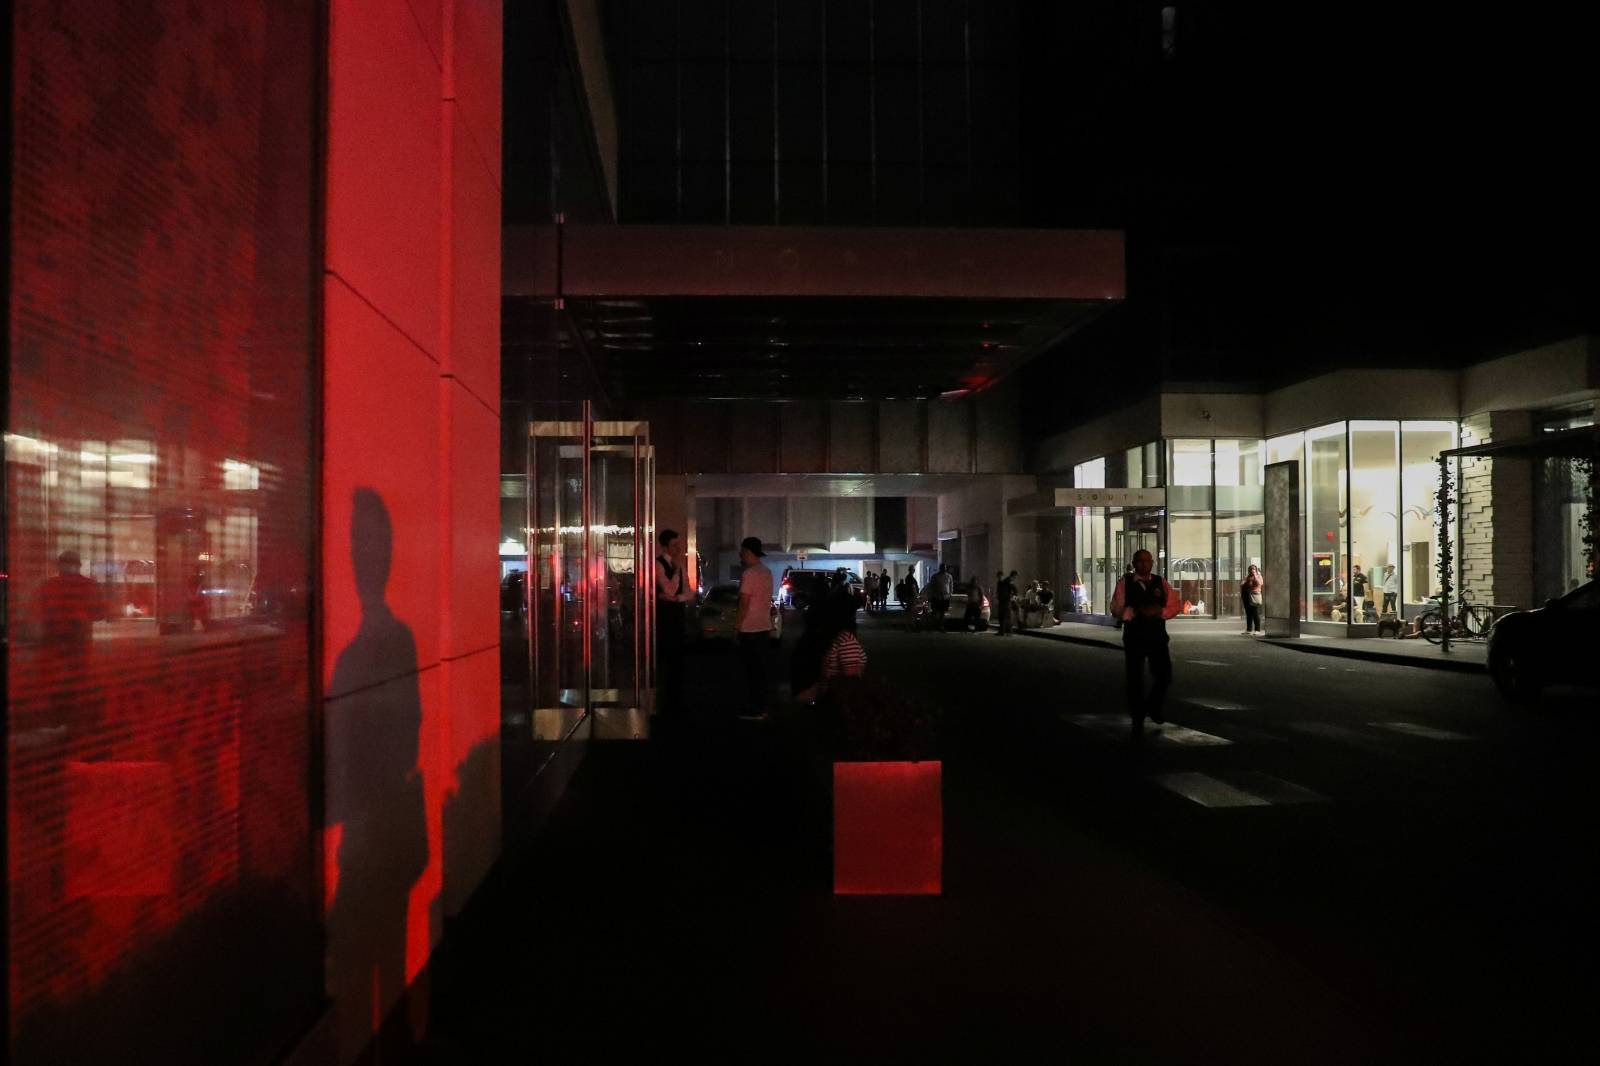 People sit outside their residential building near Times Square area, as a blackout affects buildings and traffic during widespread power outages in the Manhattan borough of New York